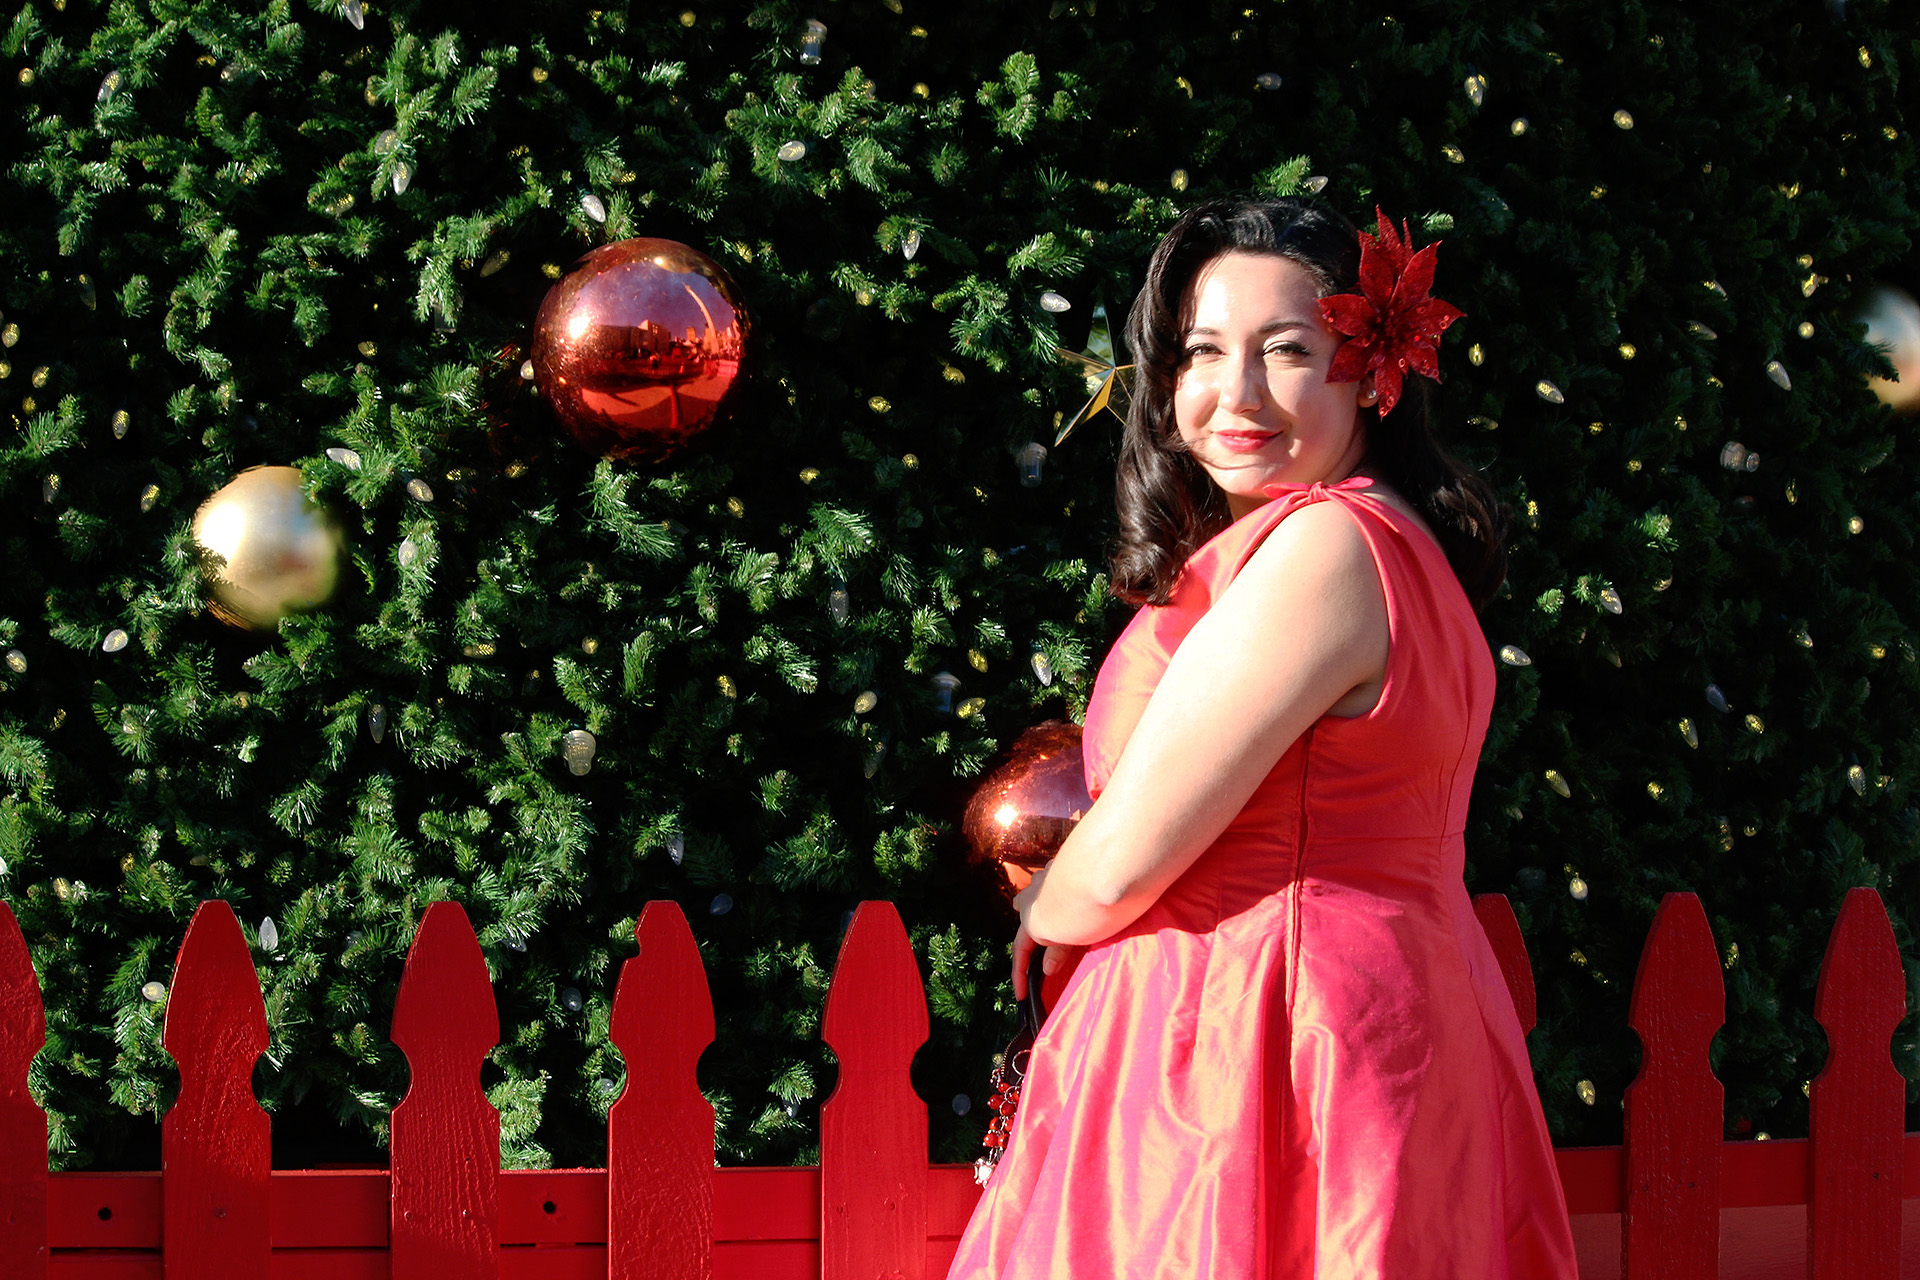 Butterick B5603 Pinup dress, Union Square Christmas Tree | @VintageonTap